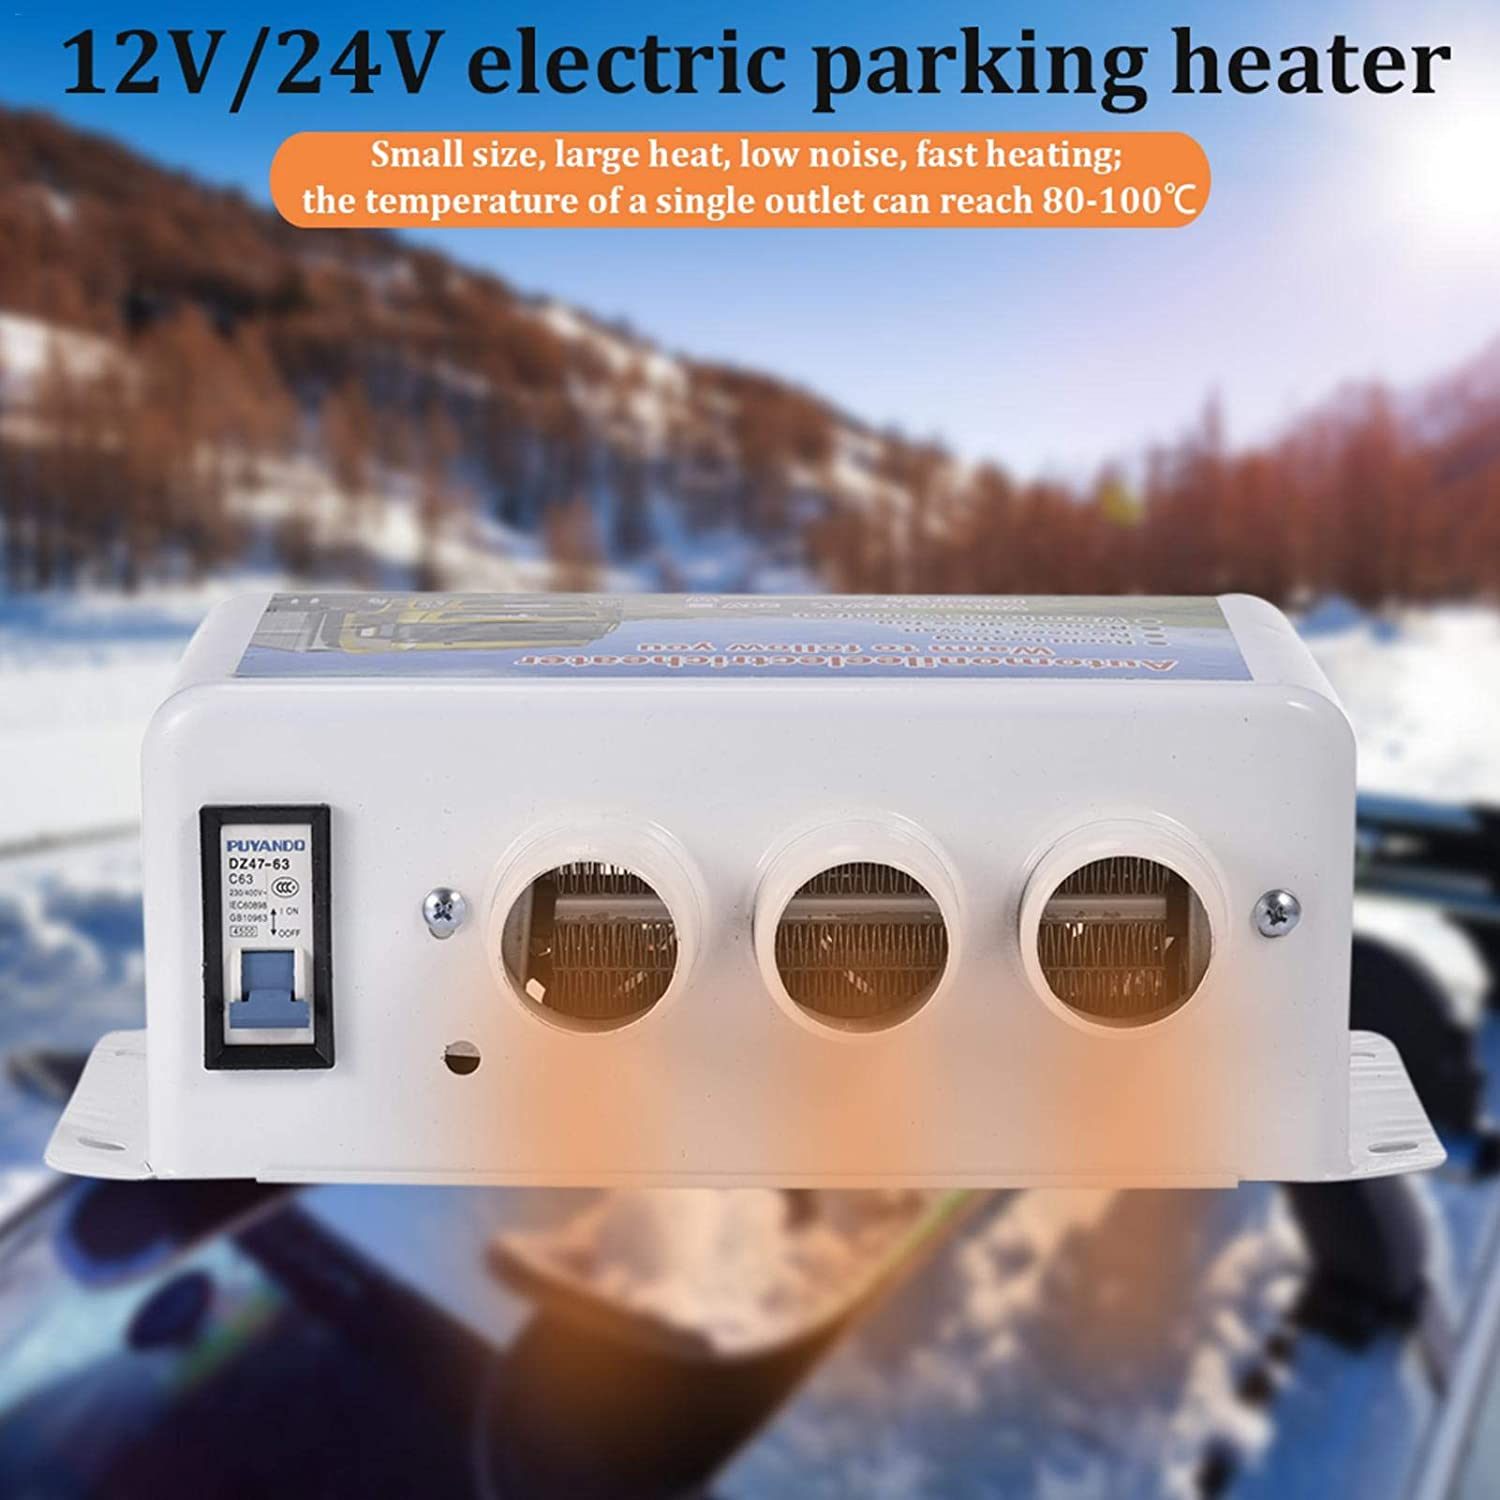 Portable Car Heater Car Heater Defogger,12//24V Universal 3 Hole Car SUV Truck Heating Heater Window Defroster Demister,Quiet Fast Heating Overheat Protection Air Circulating,12V//24V